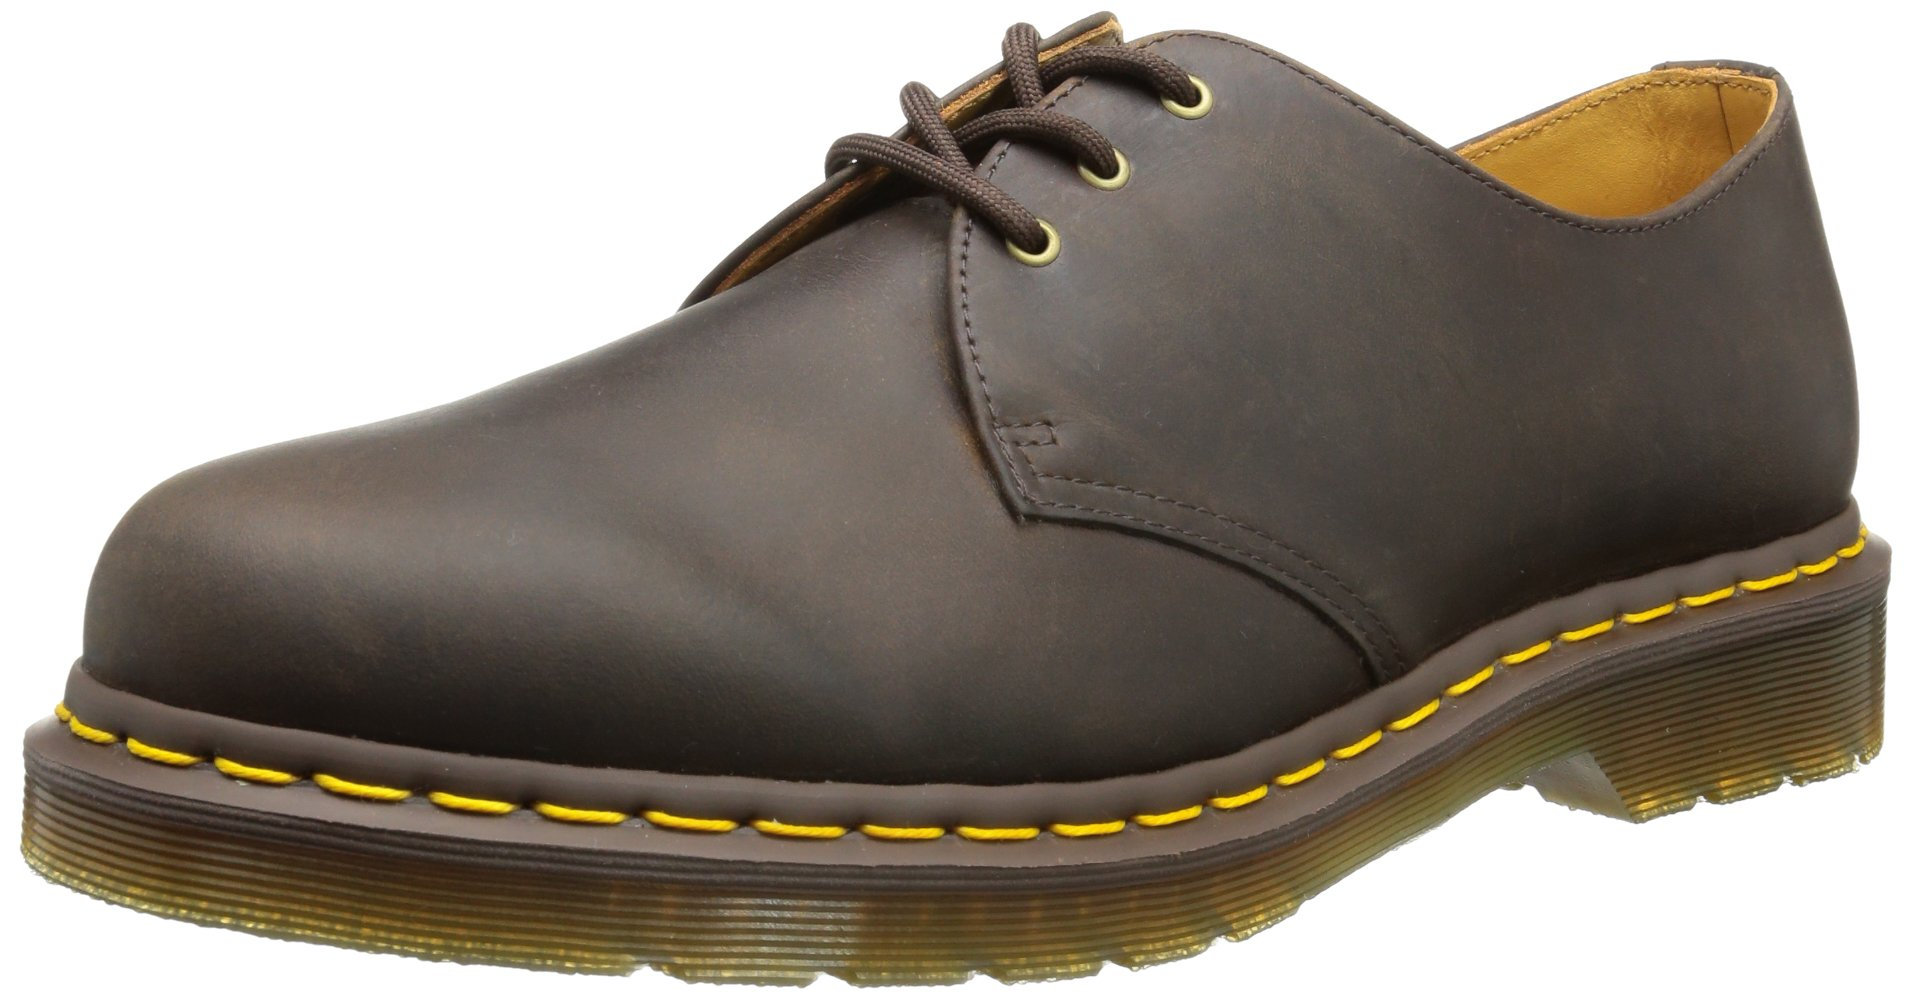 Dr. Martens  1461 Shoe, gaucho crazy horse, 12 Medium UK (Men's 13 US)